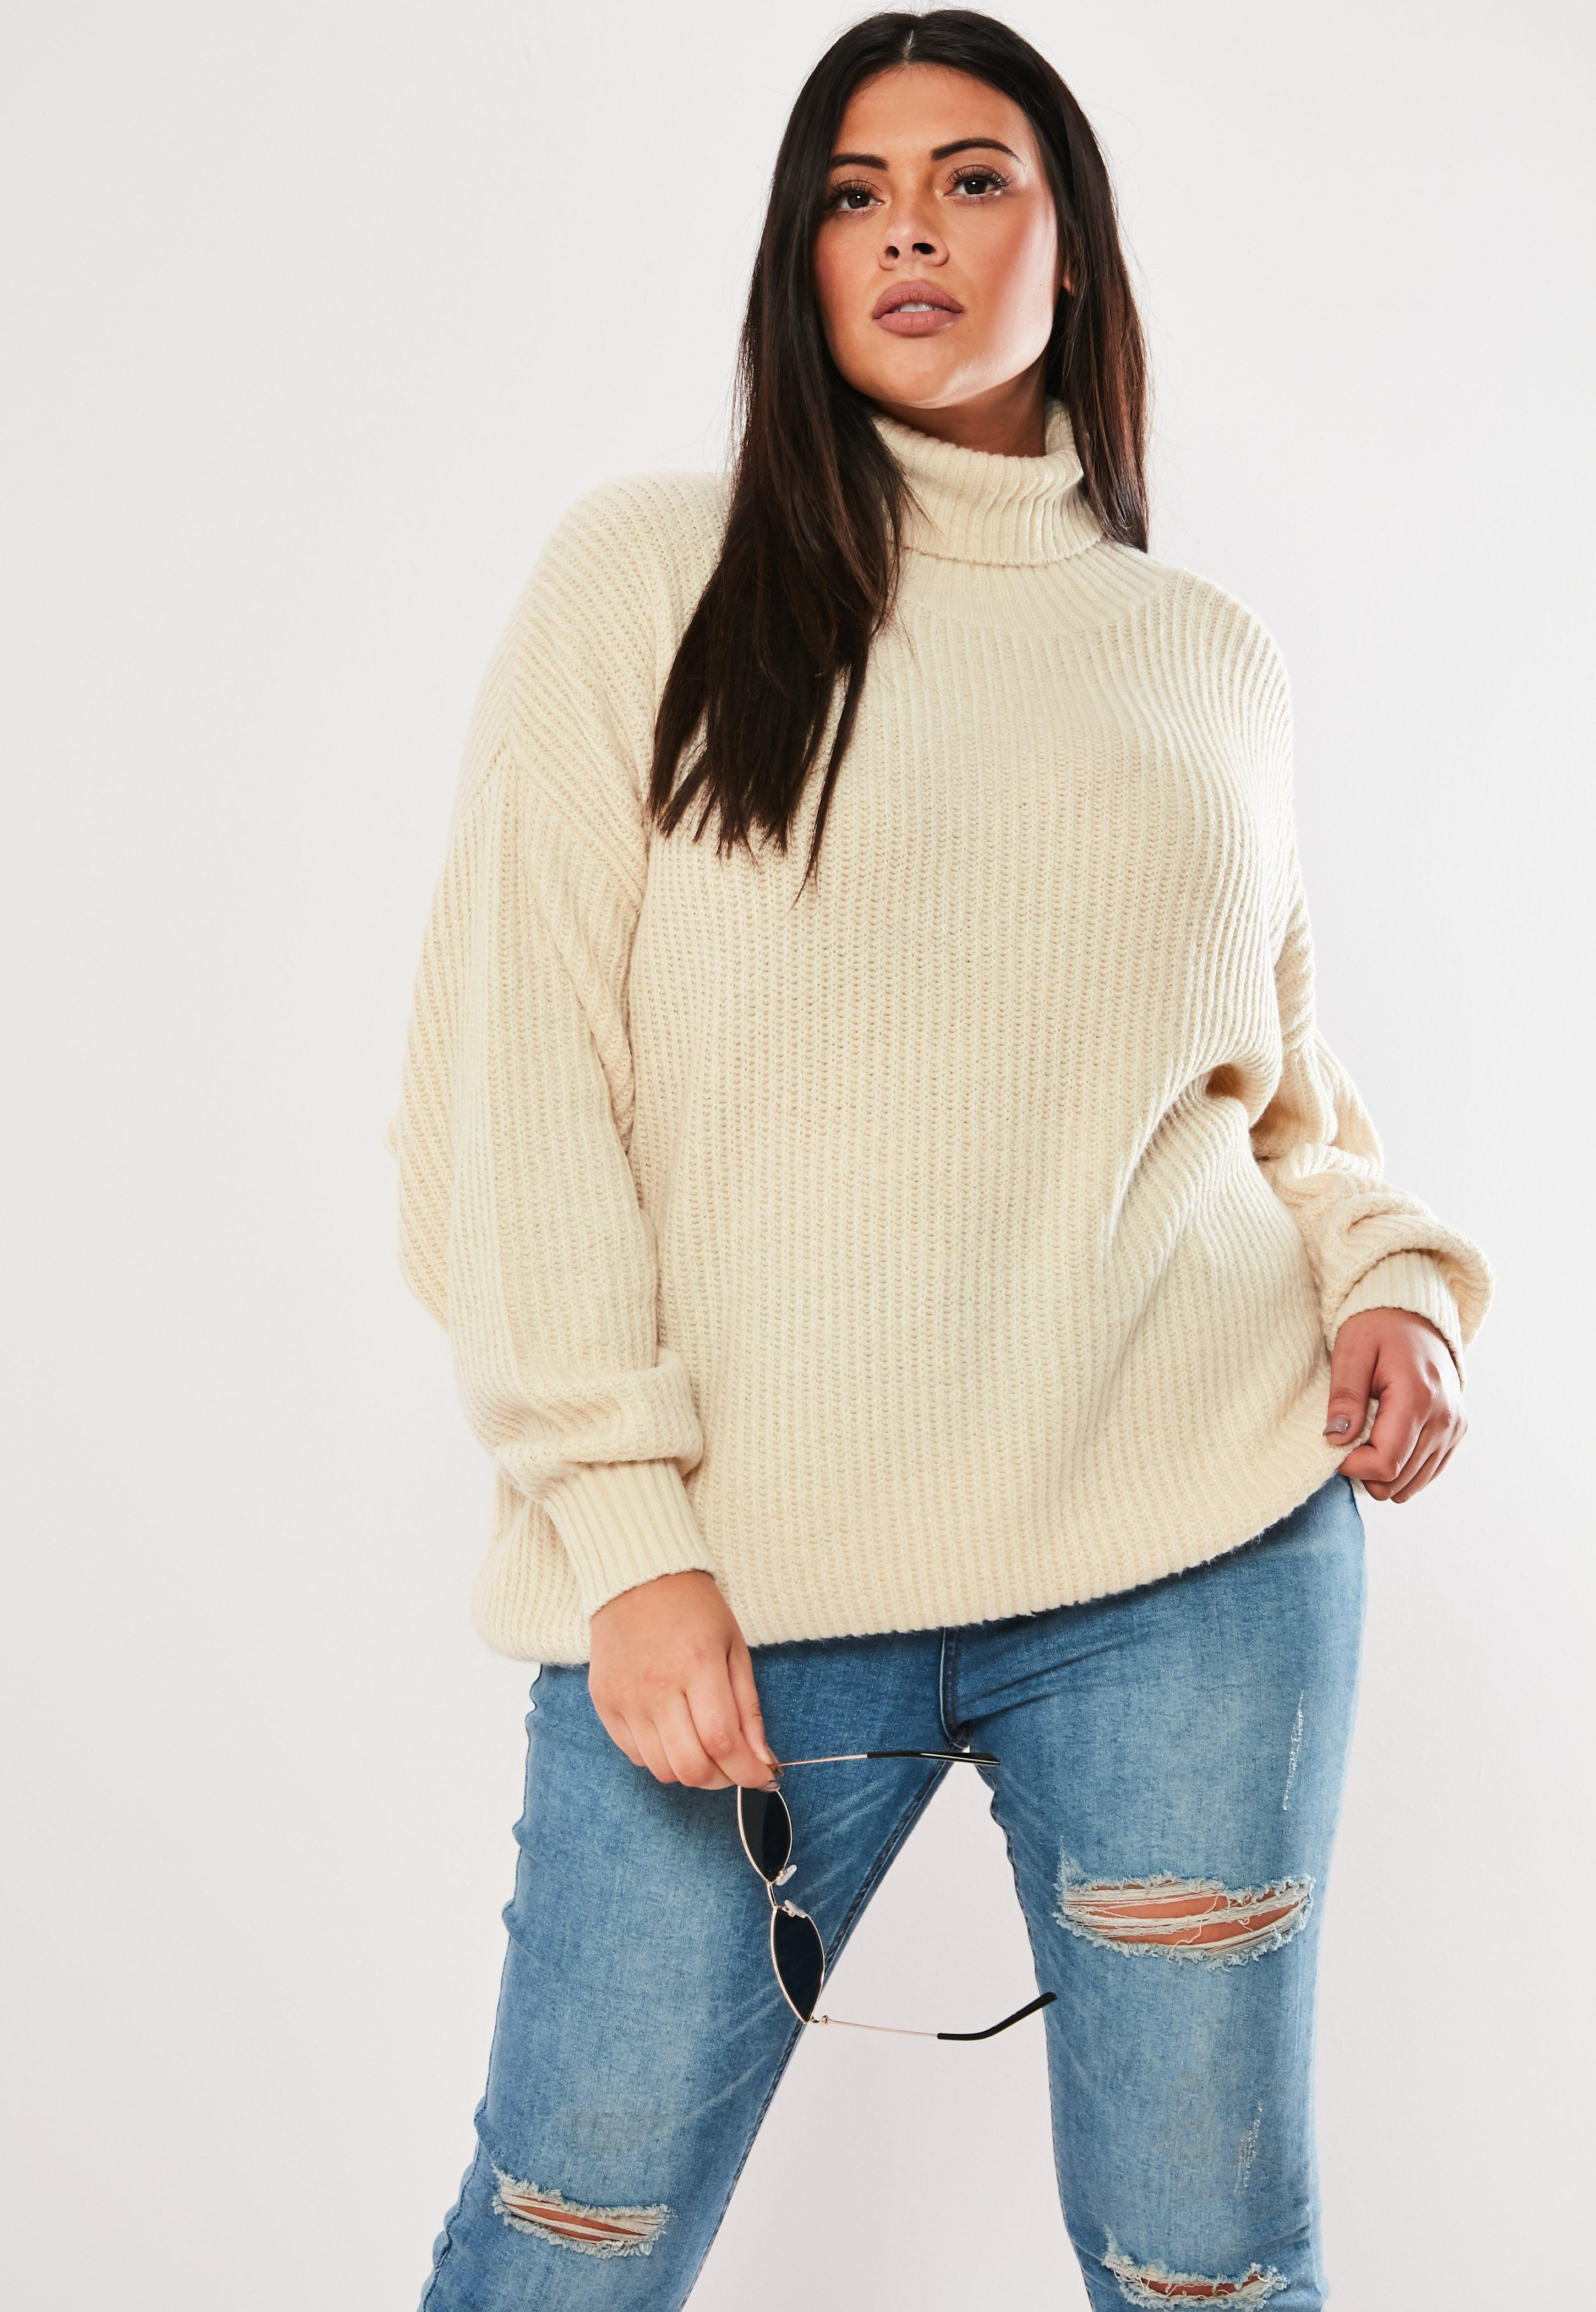 e051379b5192e7 Women's Sweaters - Oversized & Knitted Sweaters   Missguided